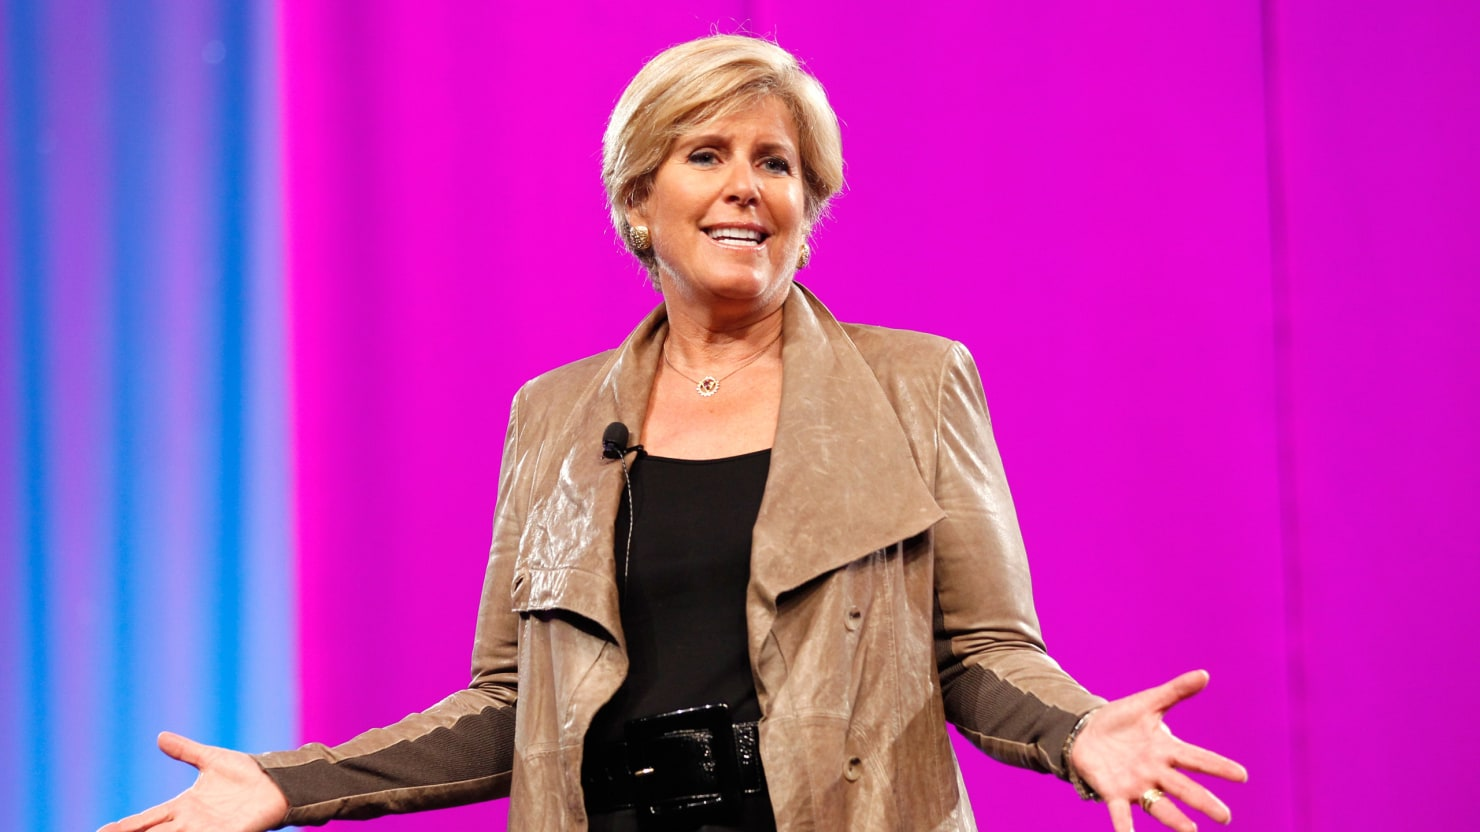 Can Suze Orman Save America?